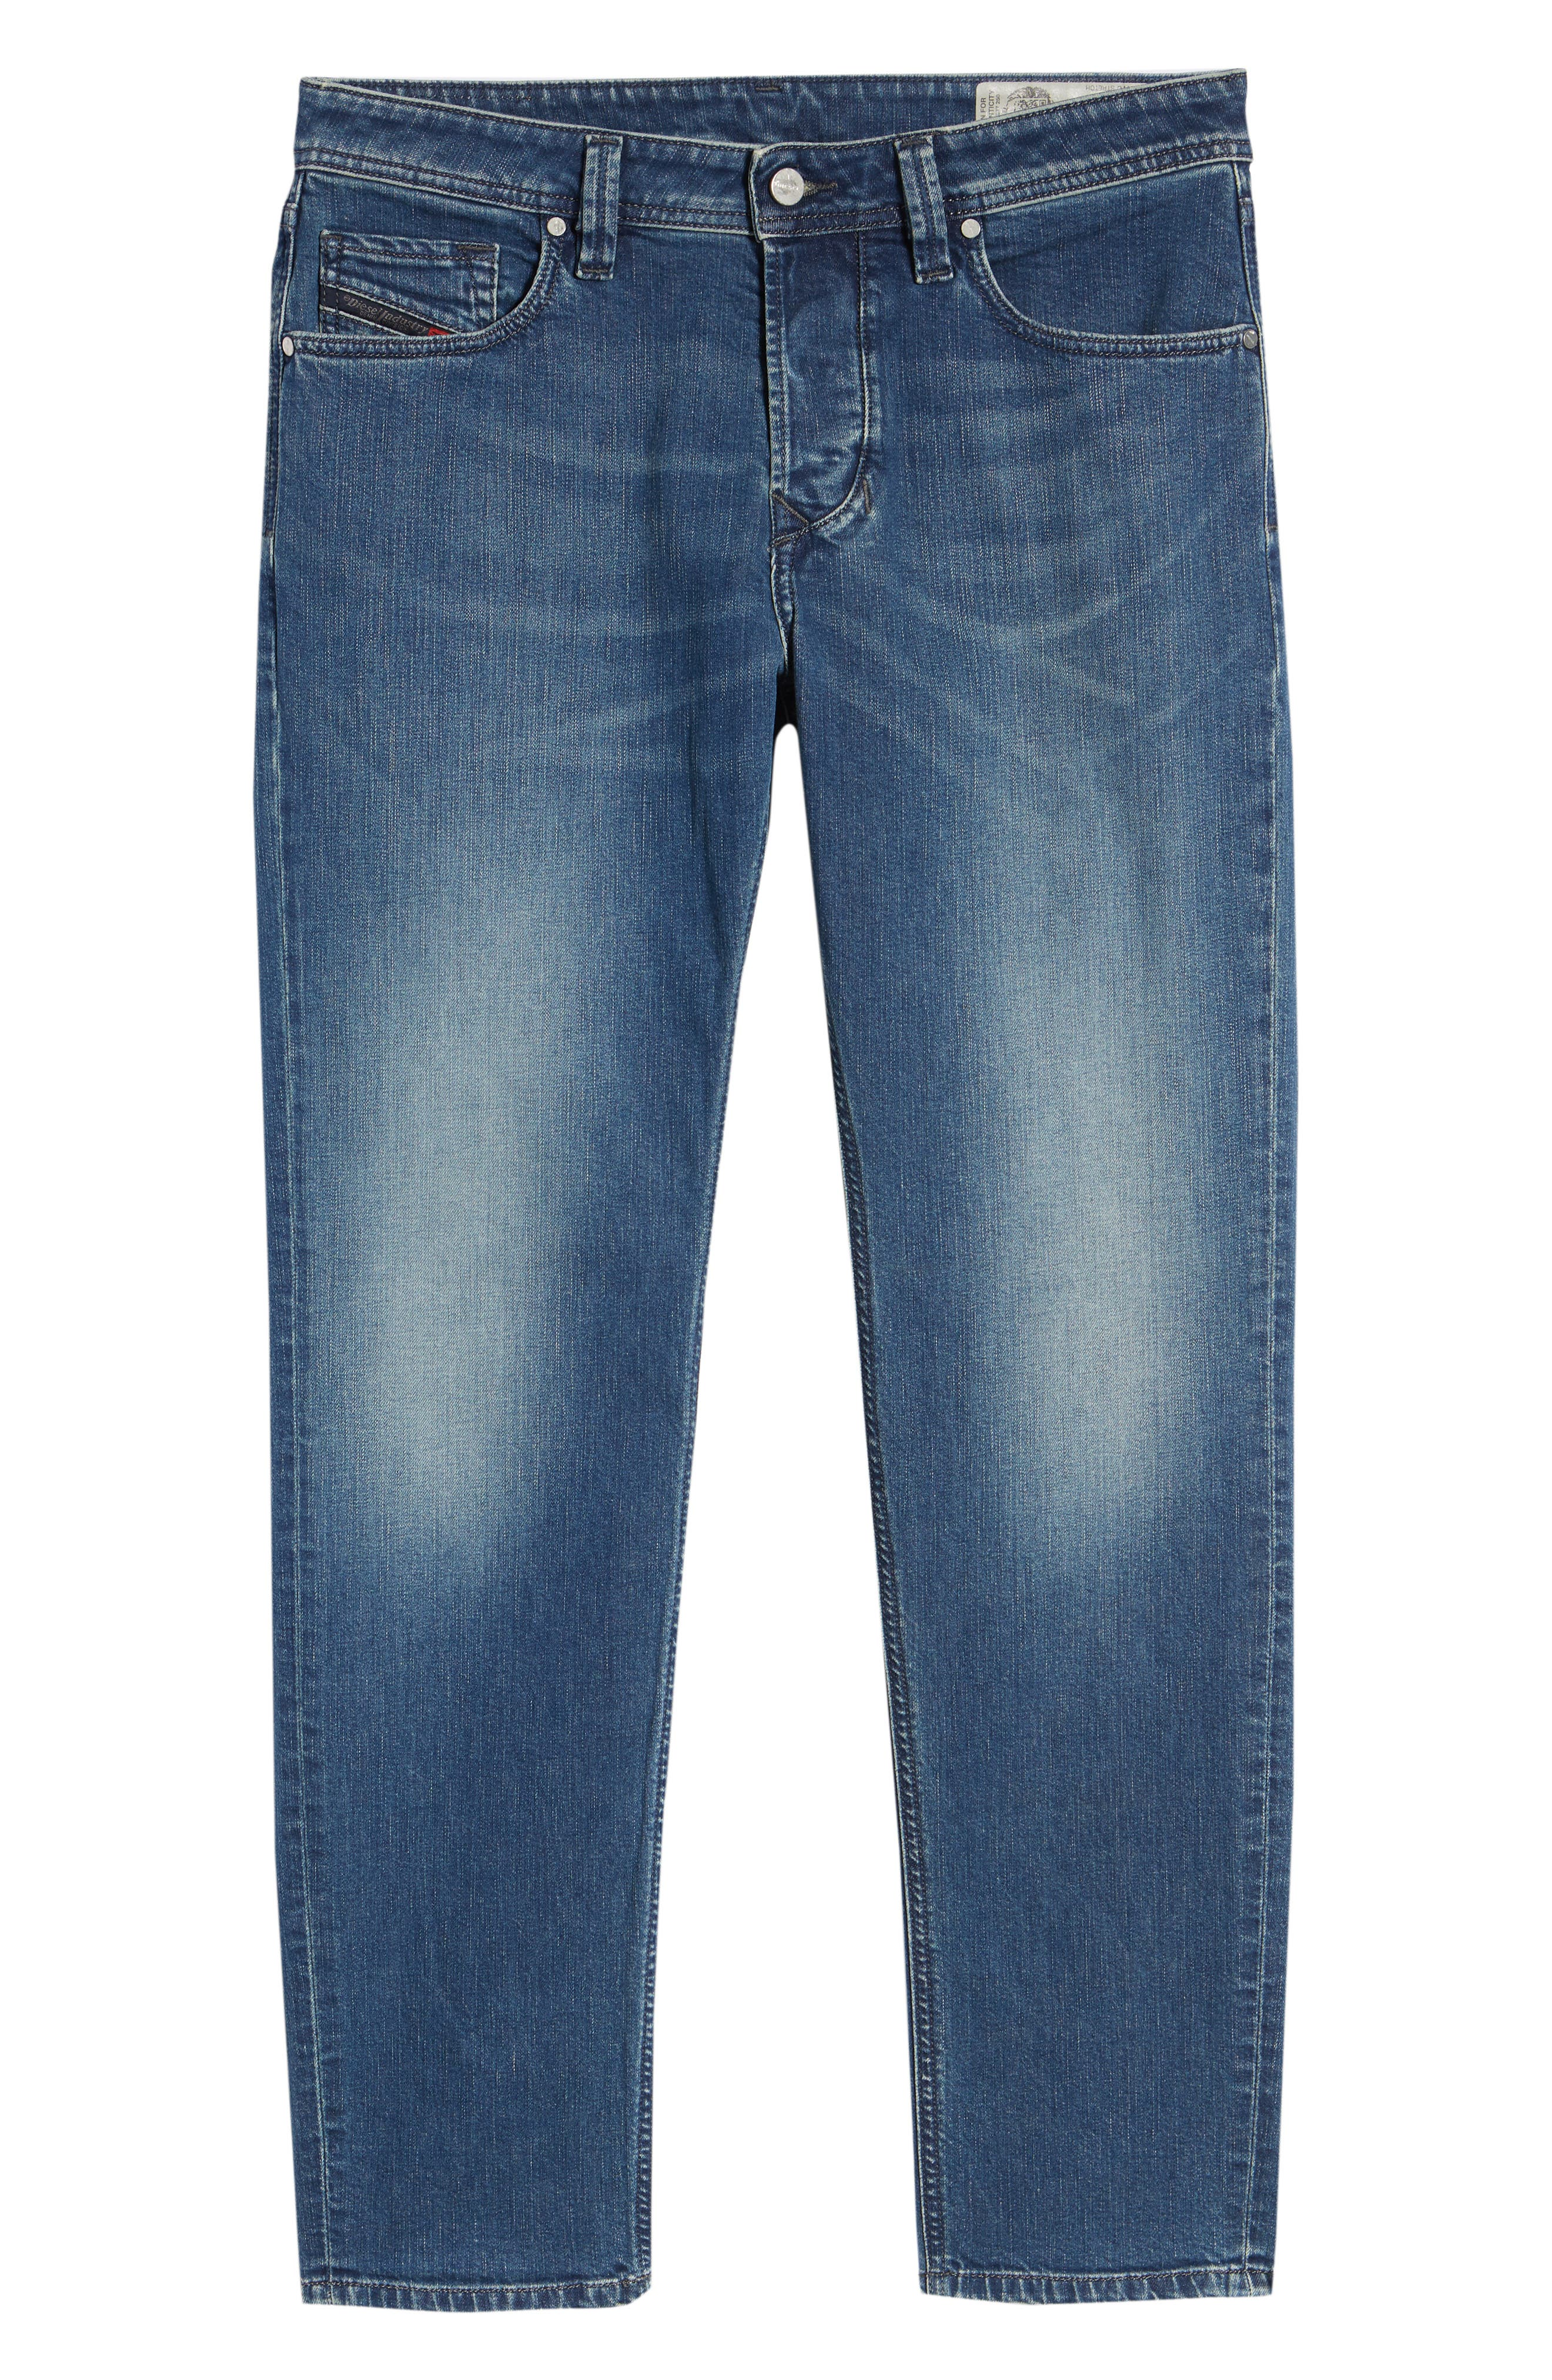 Larkee Relaxed Fit Jeans,                             Alternate thumbnail 6, color,                             400